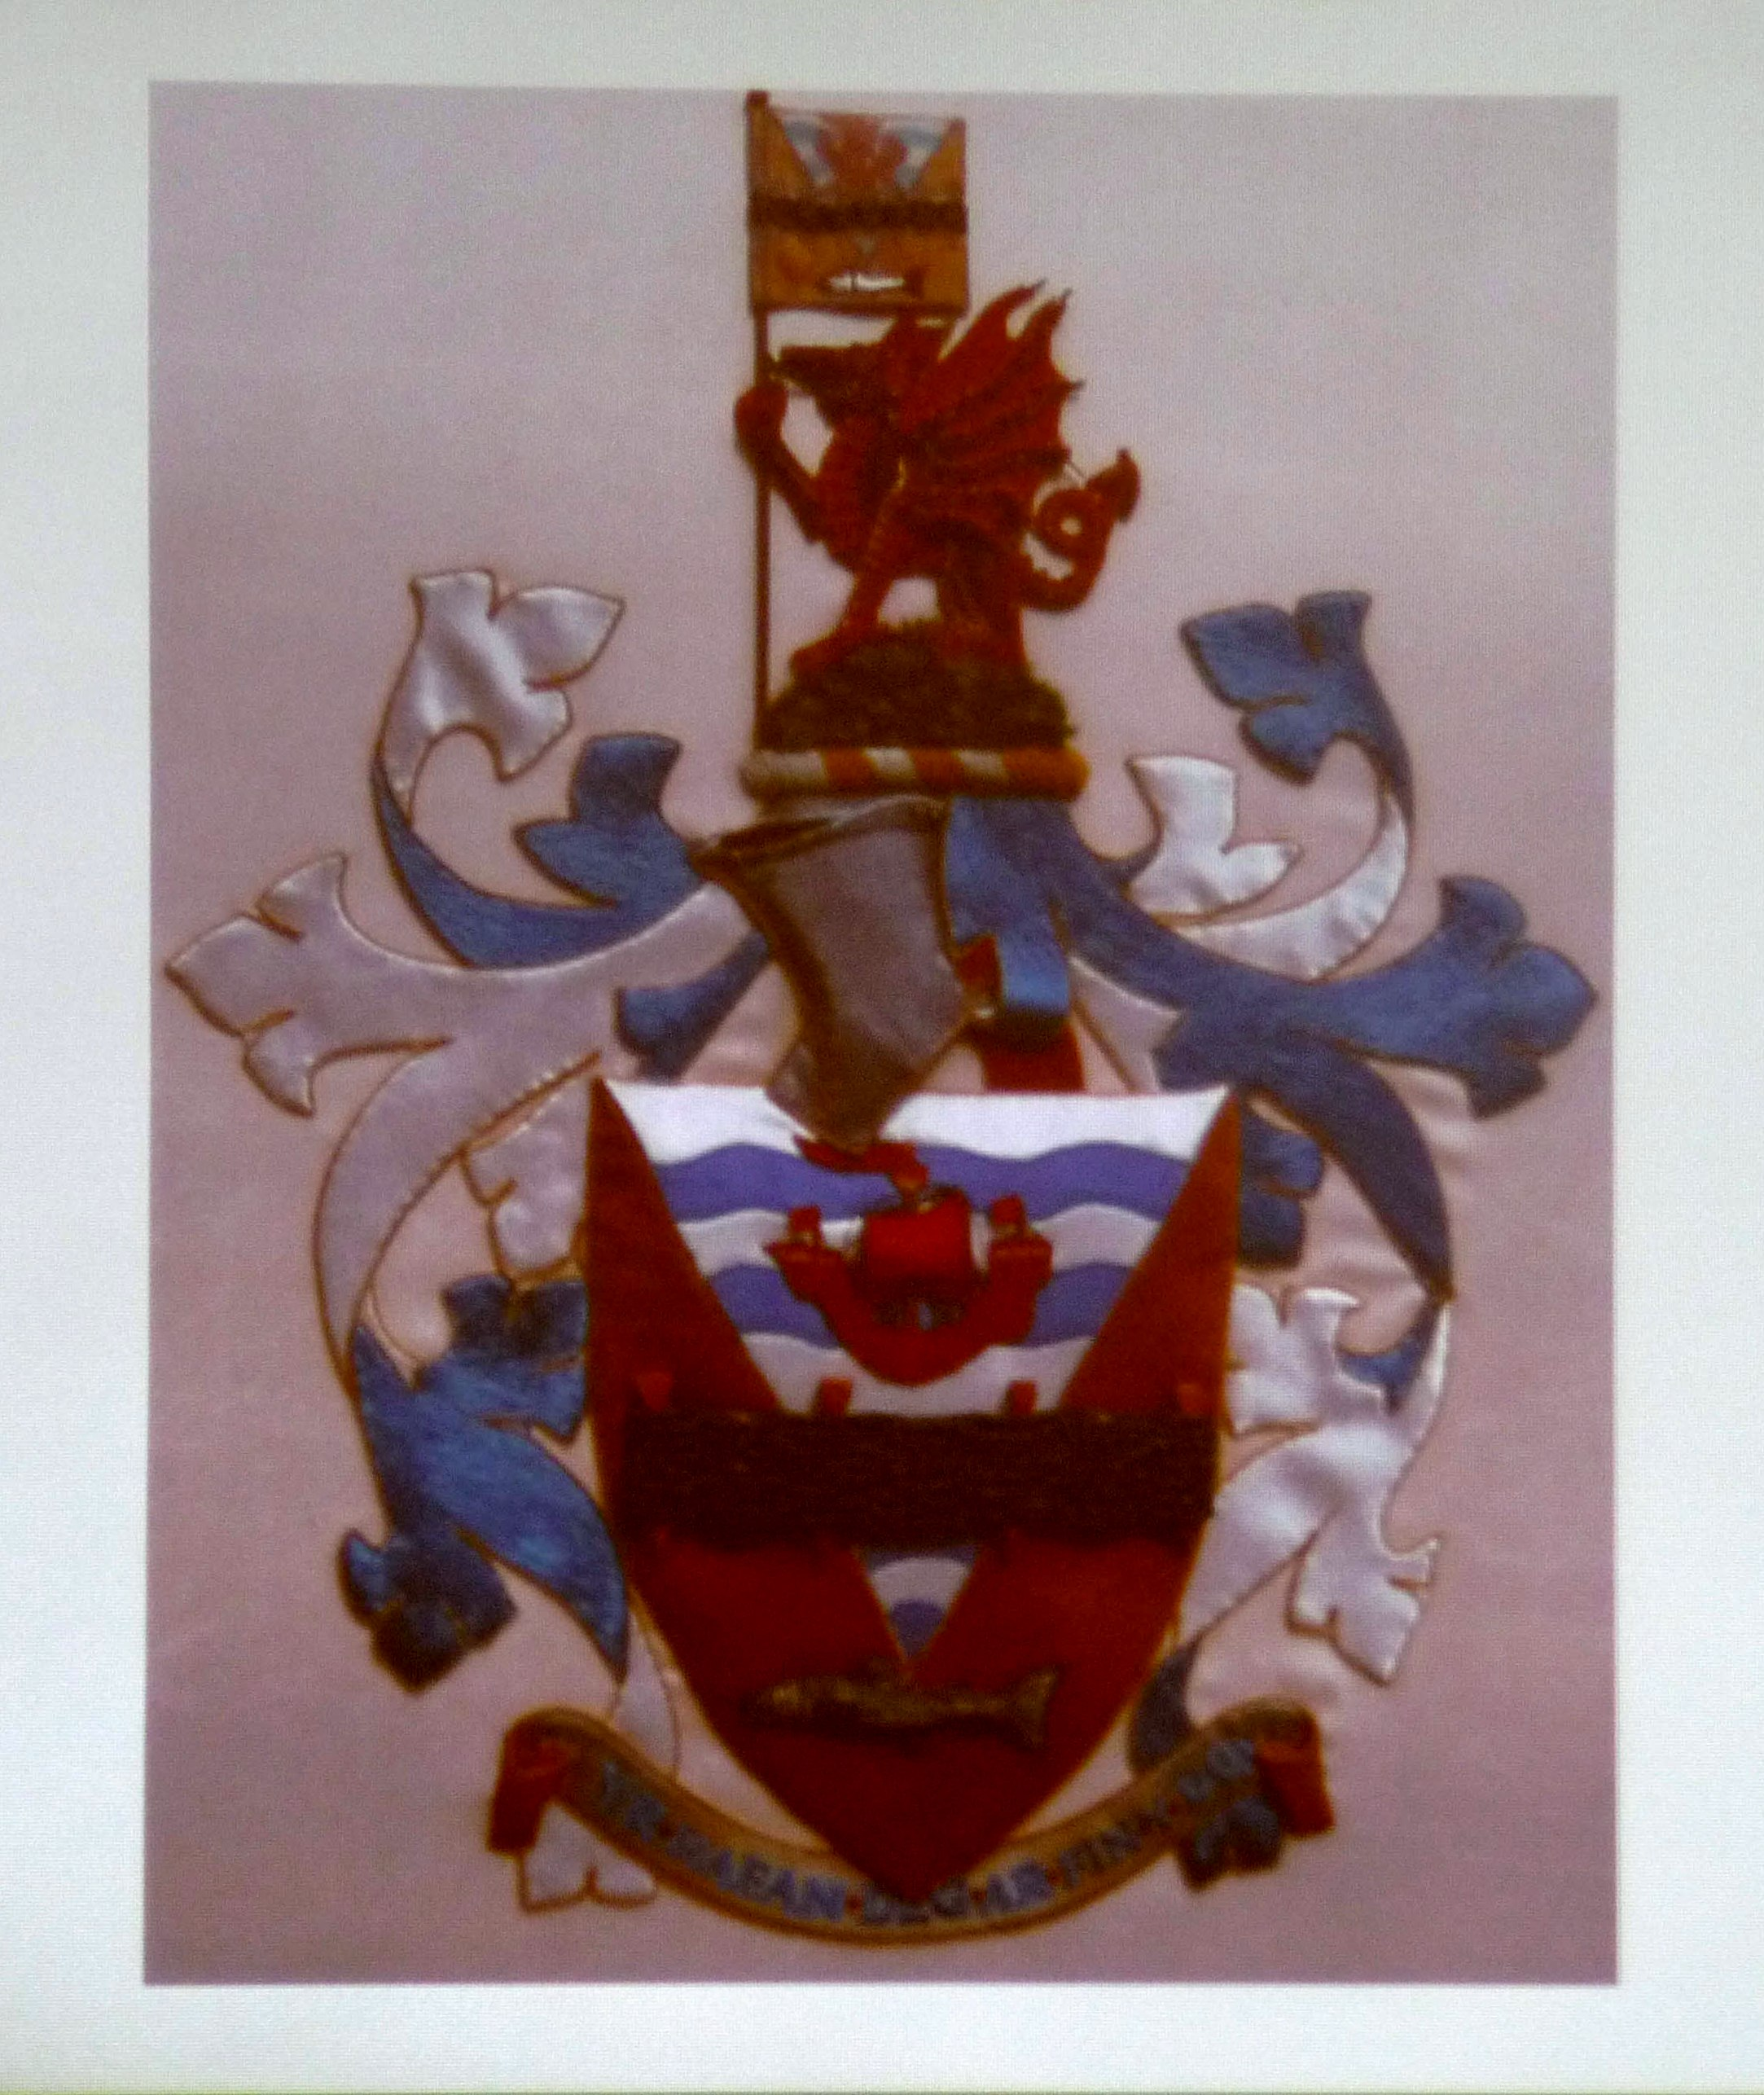 Rhyl Town Crest embroidered by Moya McCarthy and members of Rhyl EG